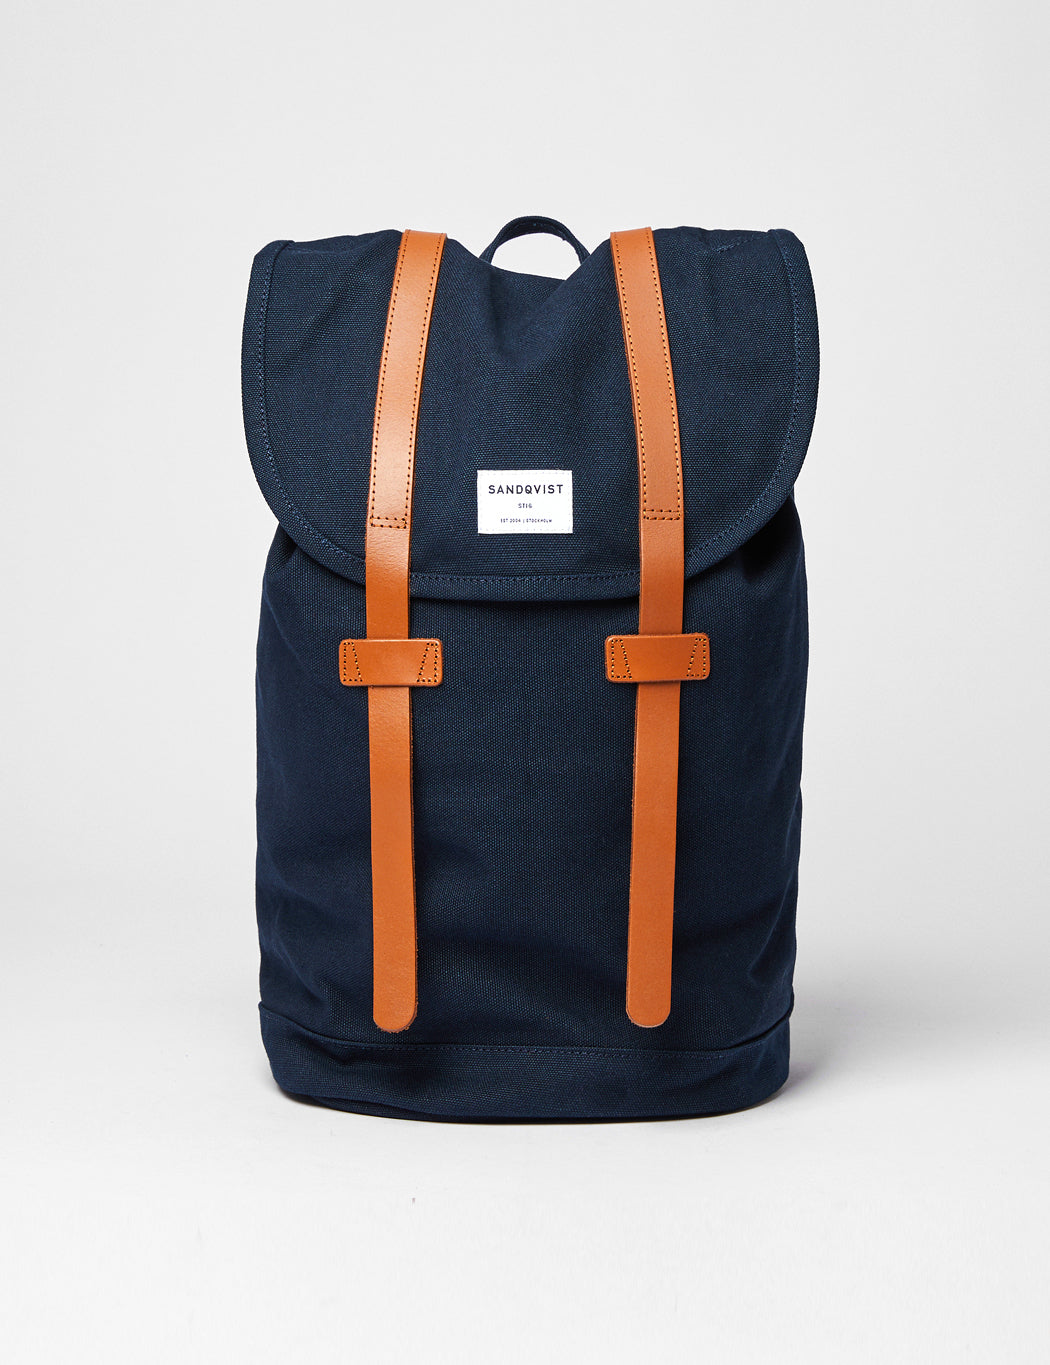 Sandqvist Stig Backpack (Canvas) - Navy Blue